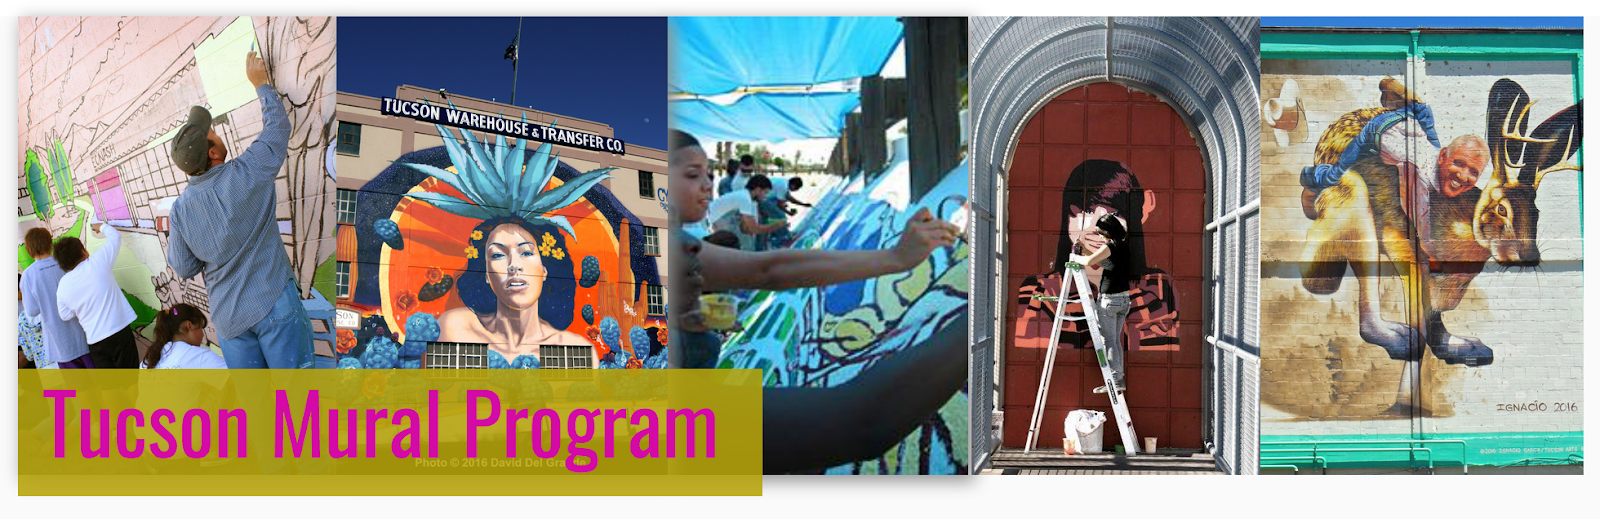 Tucson Mural Program Blog